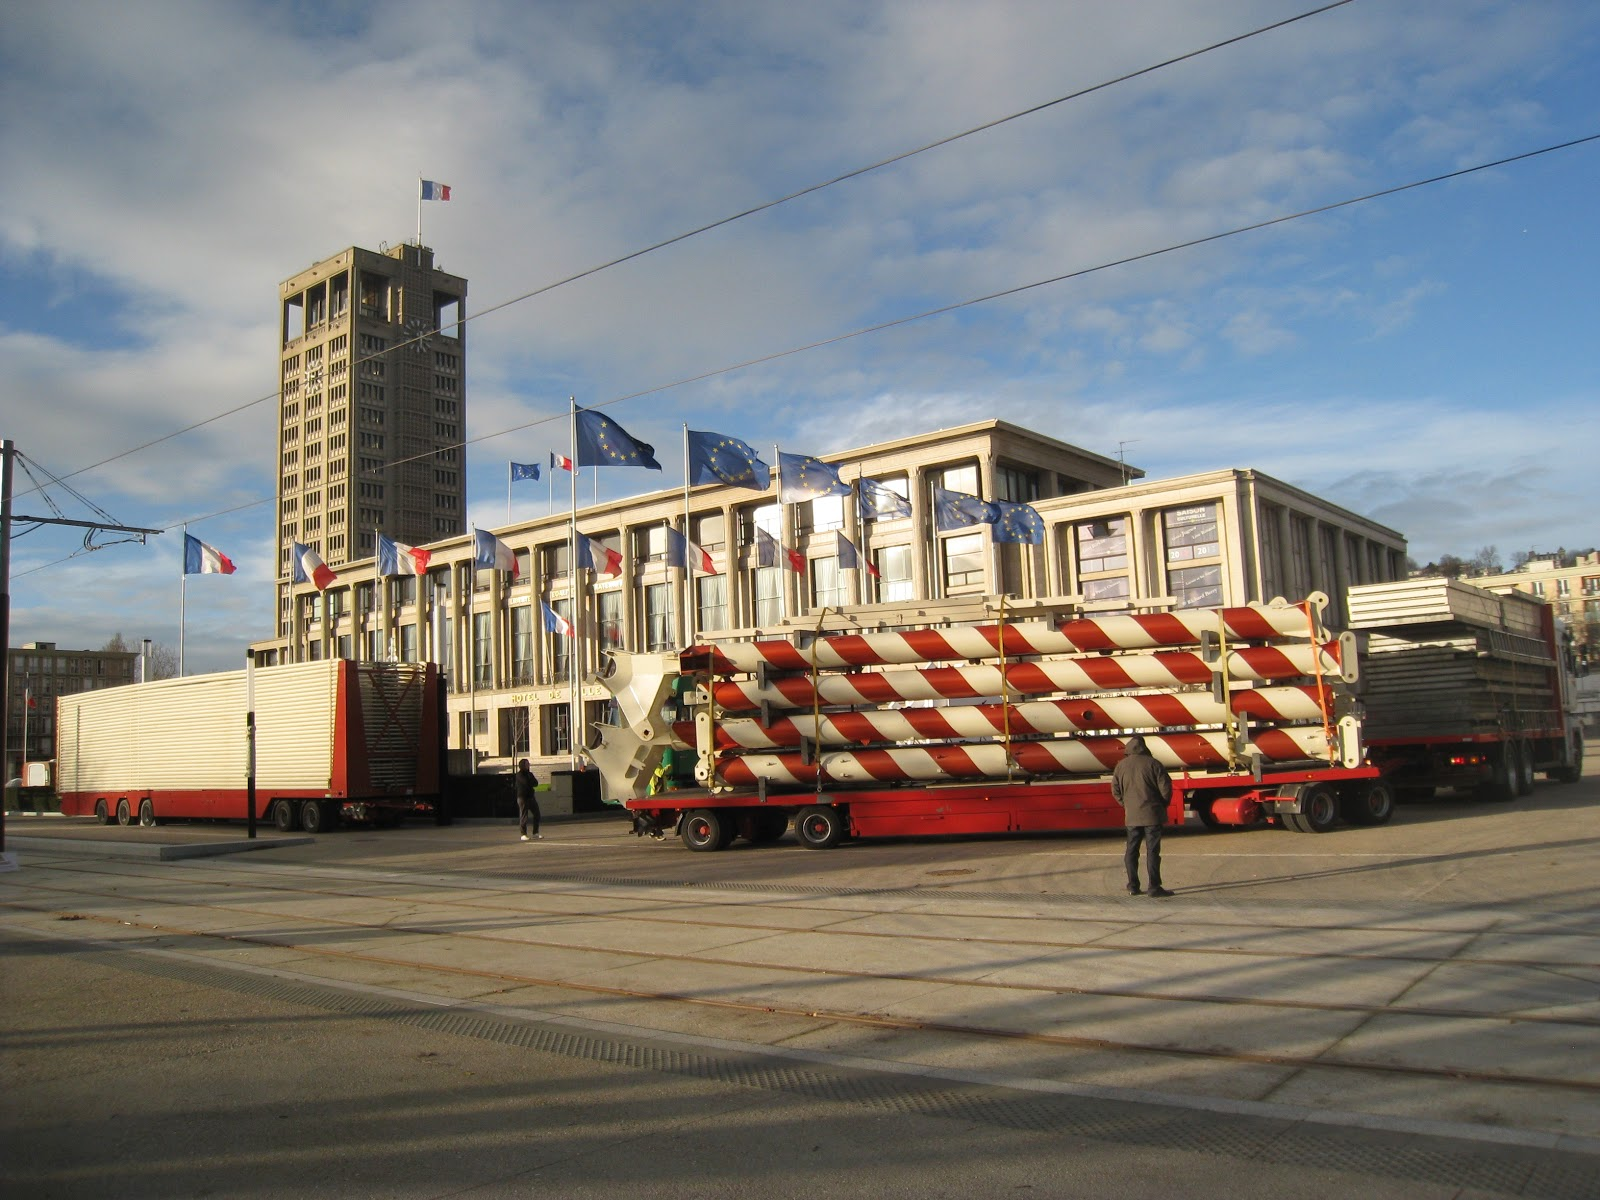 12/12/12 12h12 - Inauguration du tramway Granderoueduhavreplacehoteldeville